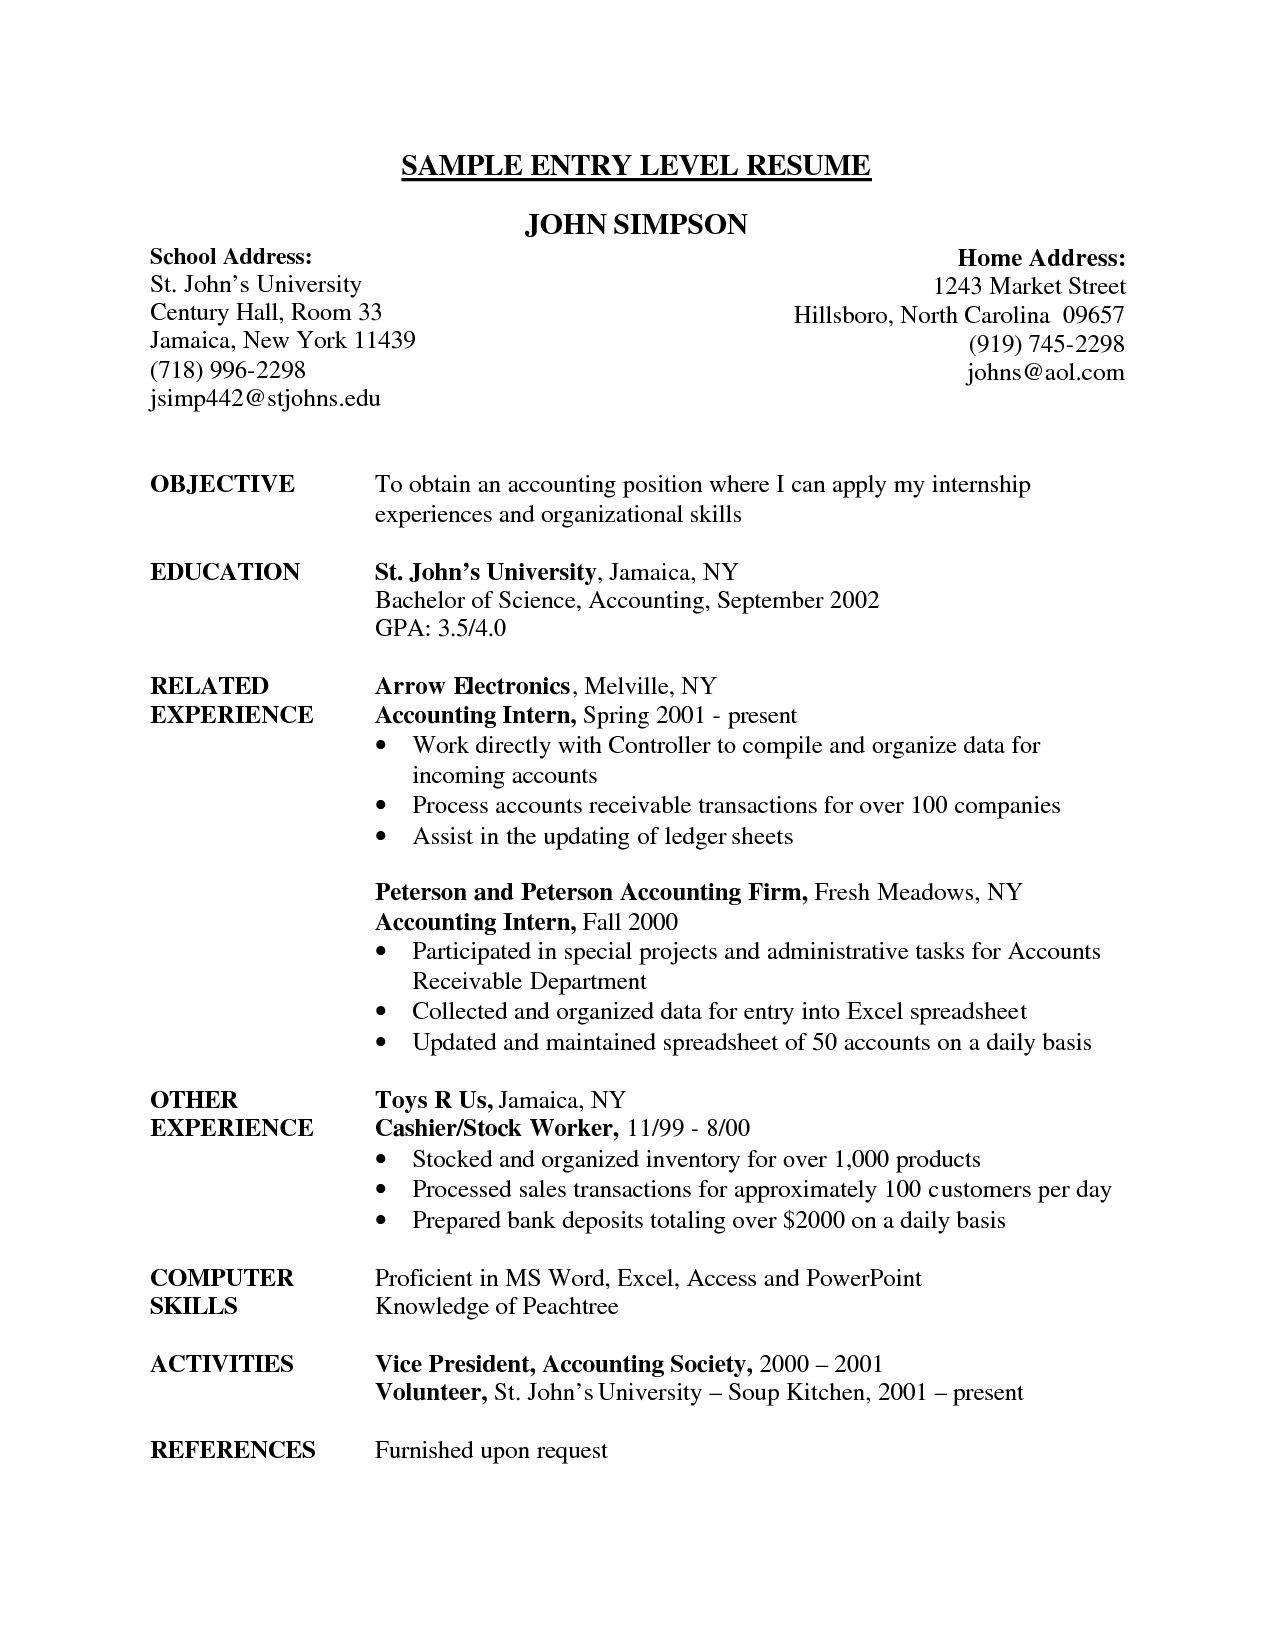 Example Entry Level Resume Grude Interpretomics Co